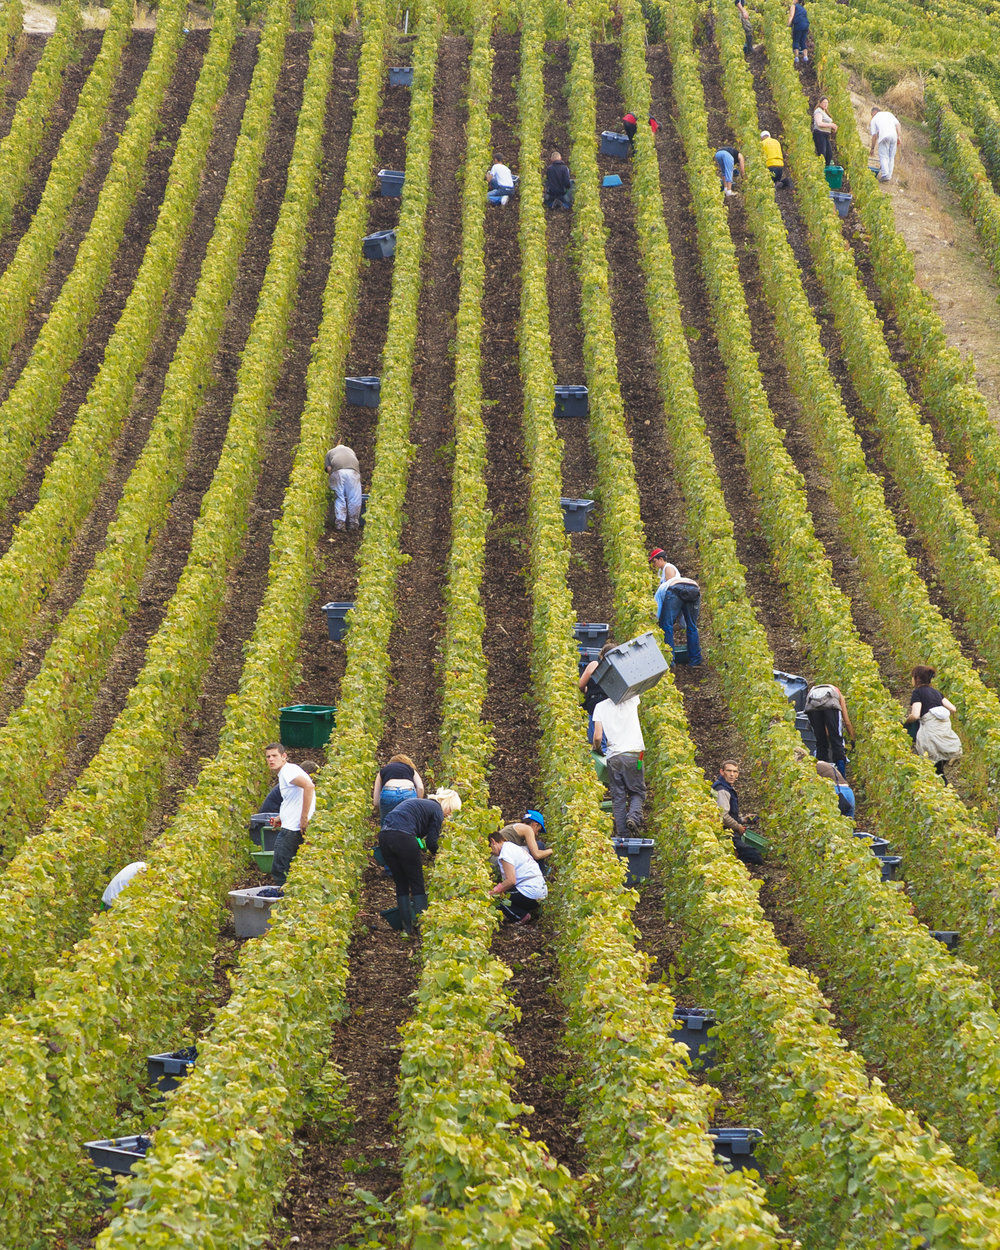 Harvest time in champagne (PHOTO: © Lyn farmer)